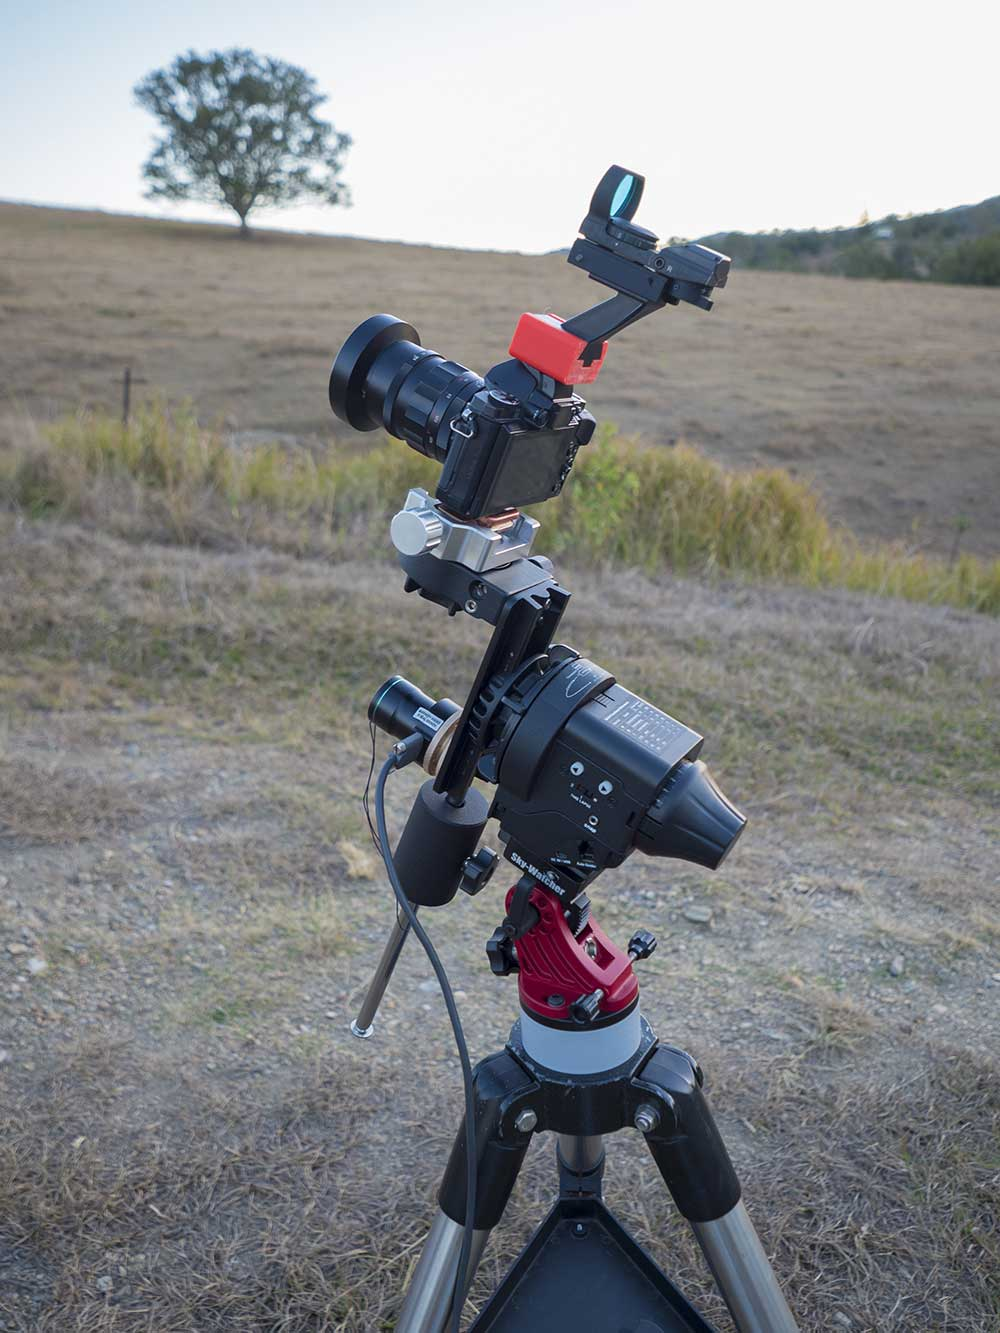 Astrophotography with the OMD EM5 and Voigtlander 25mm